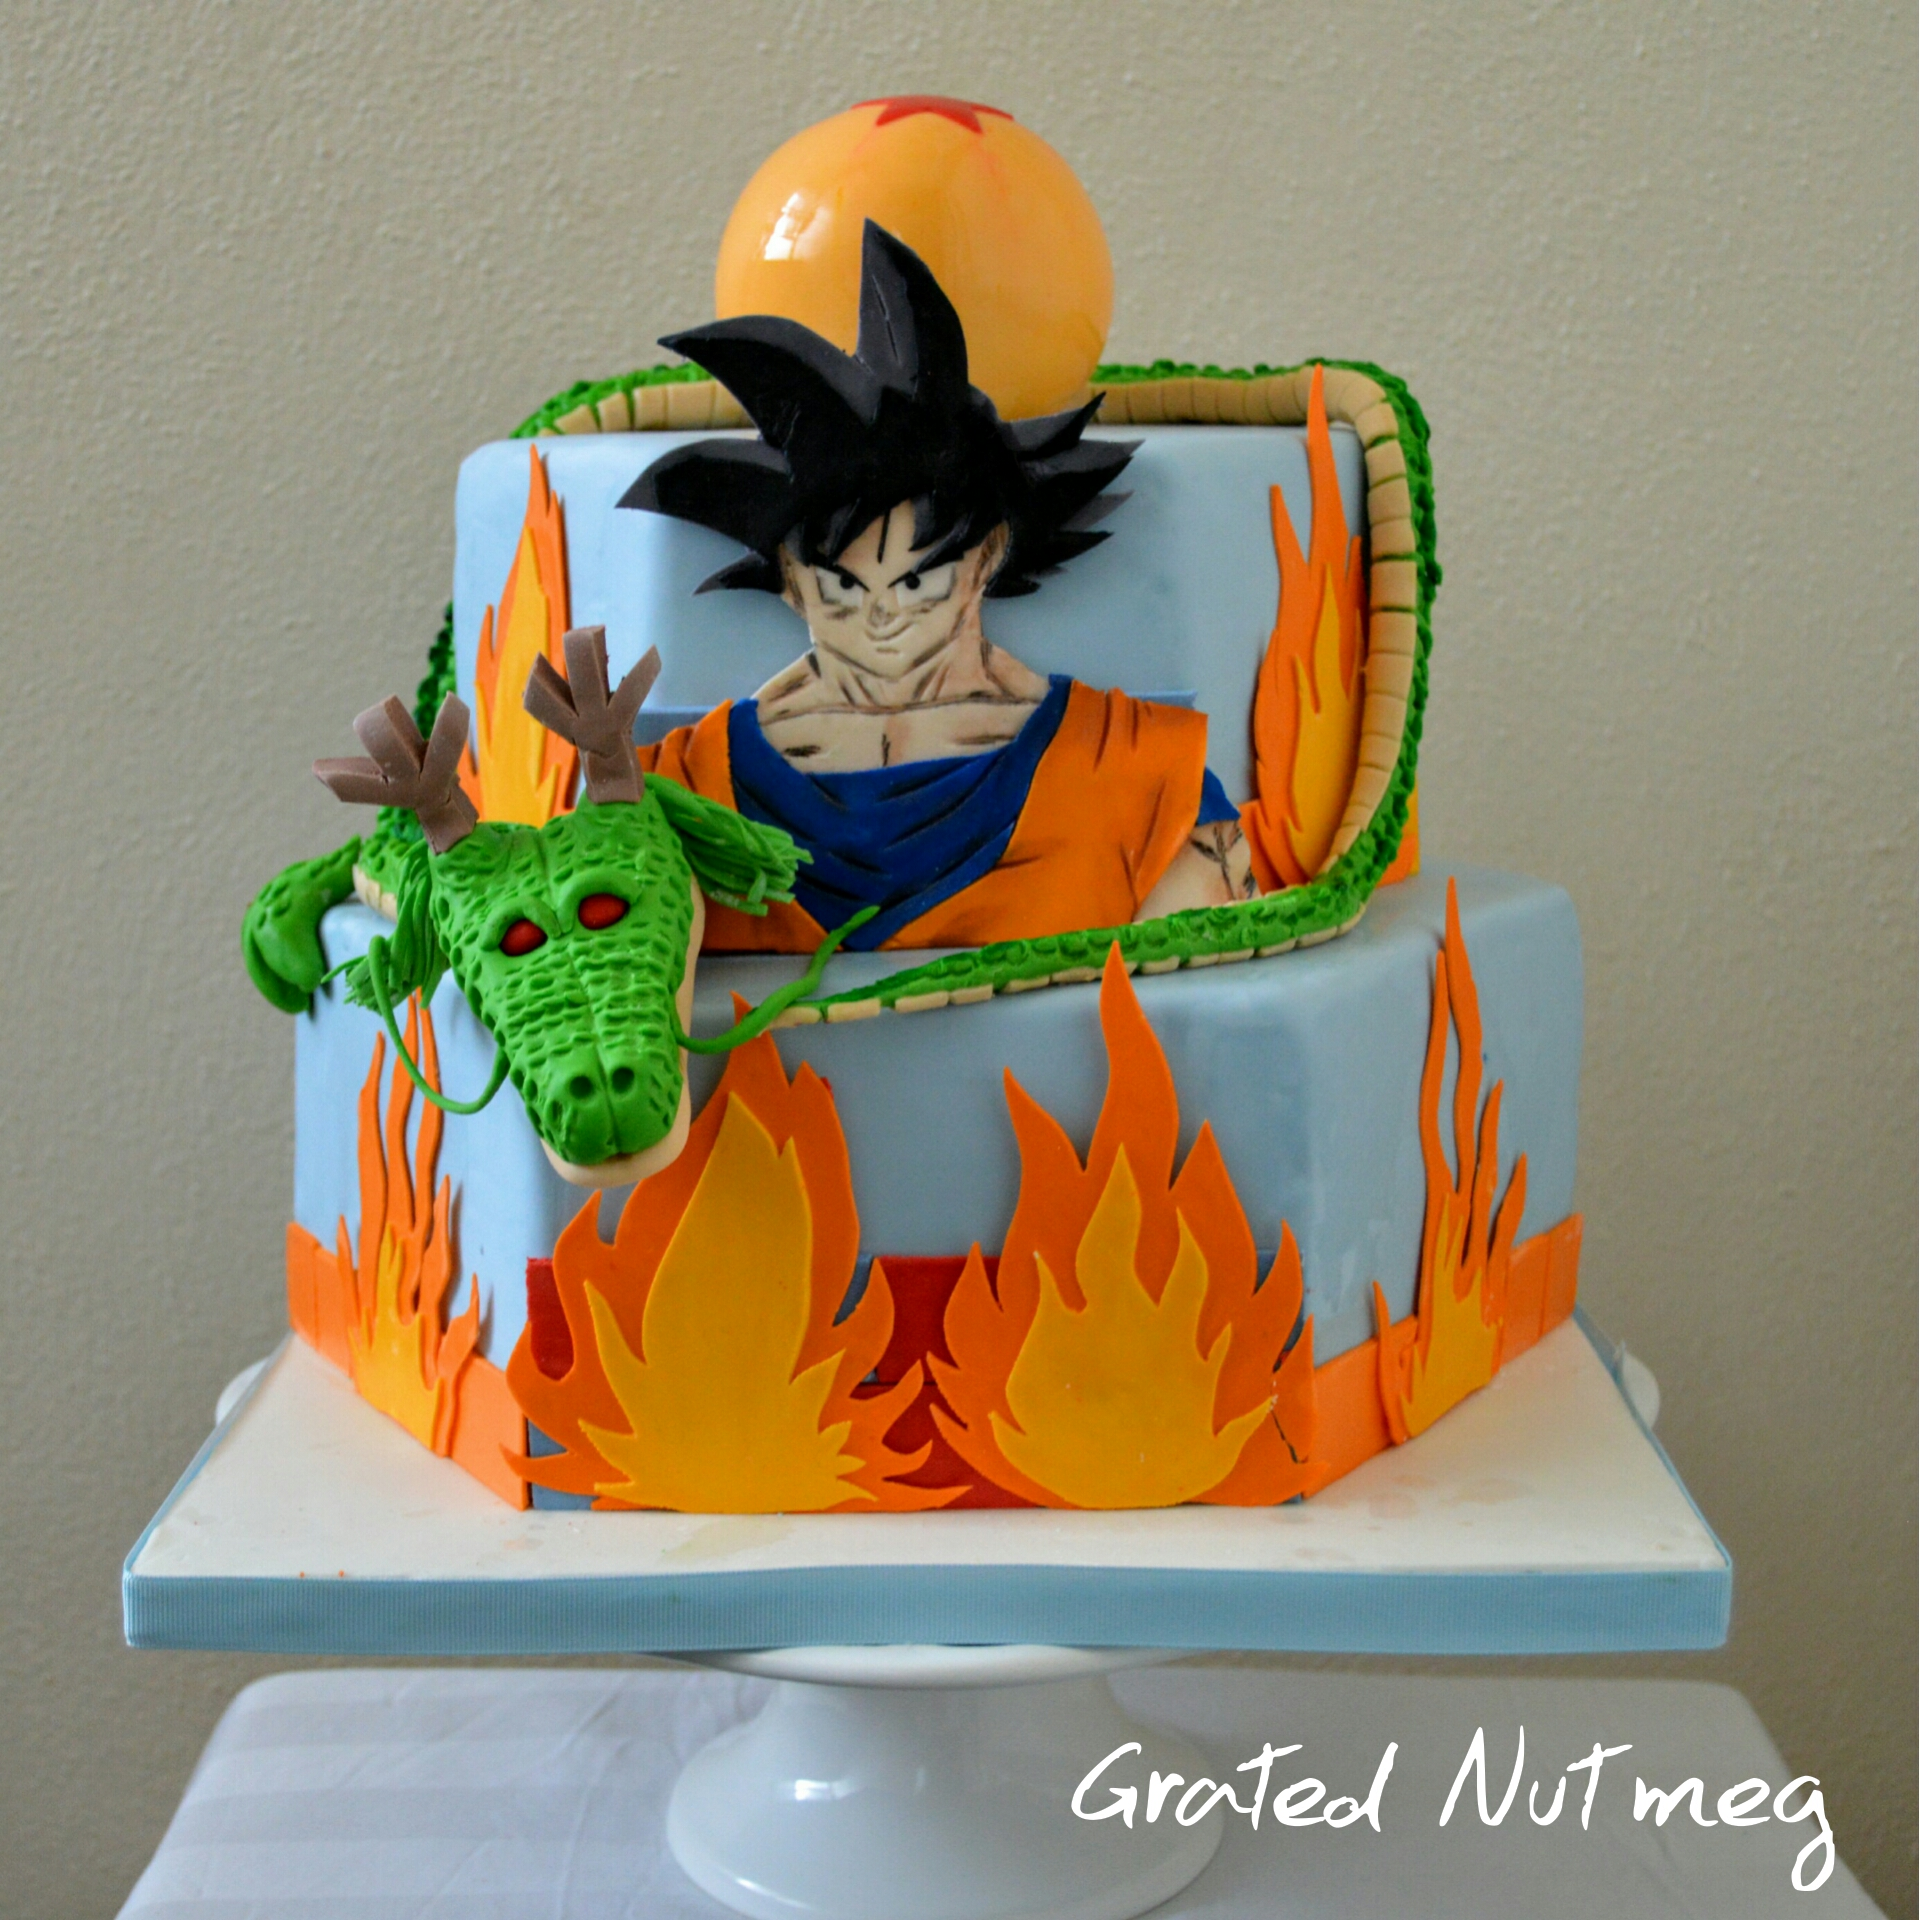 Dragon Ball Z Cake Grated Nutmeg